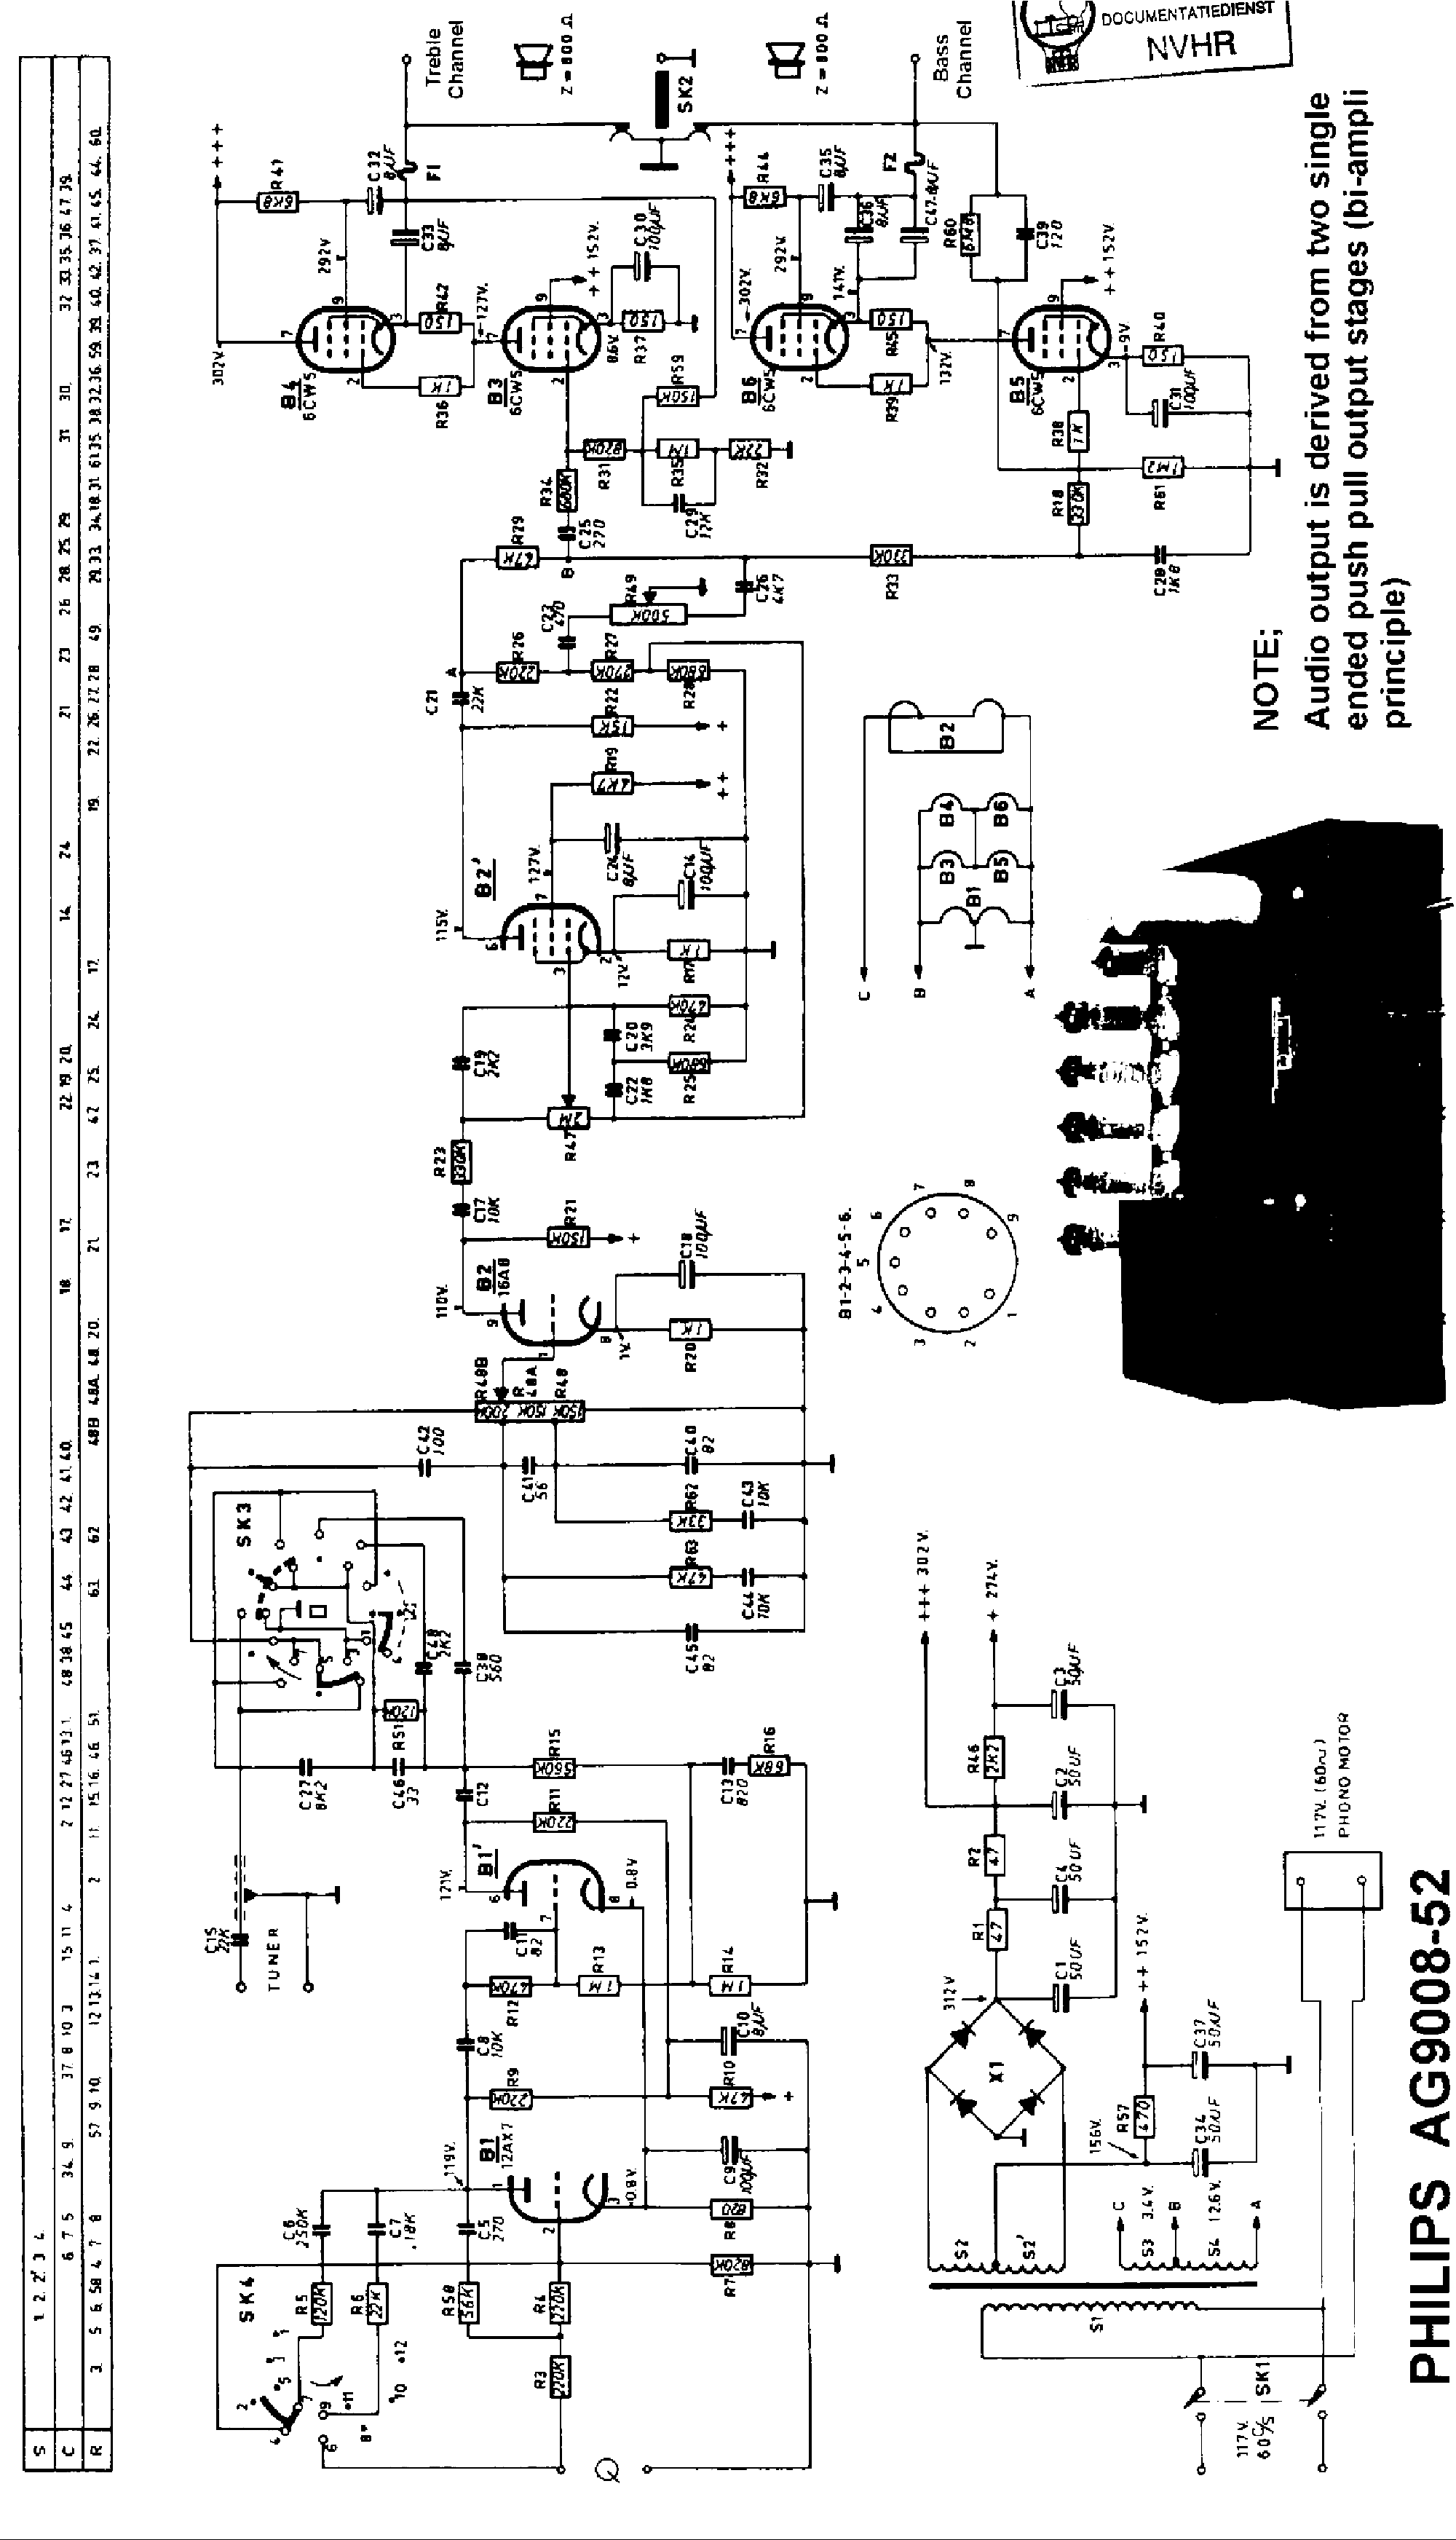 Schematic Diagram Of Two Types Of Electric Fields And Manual Guide